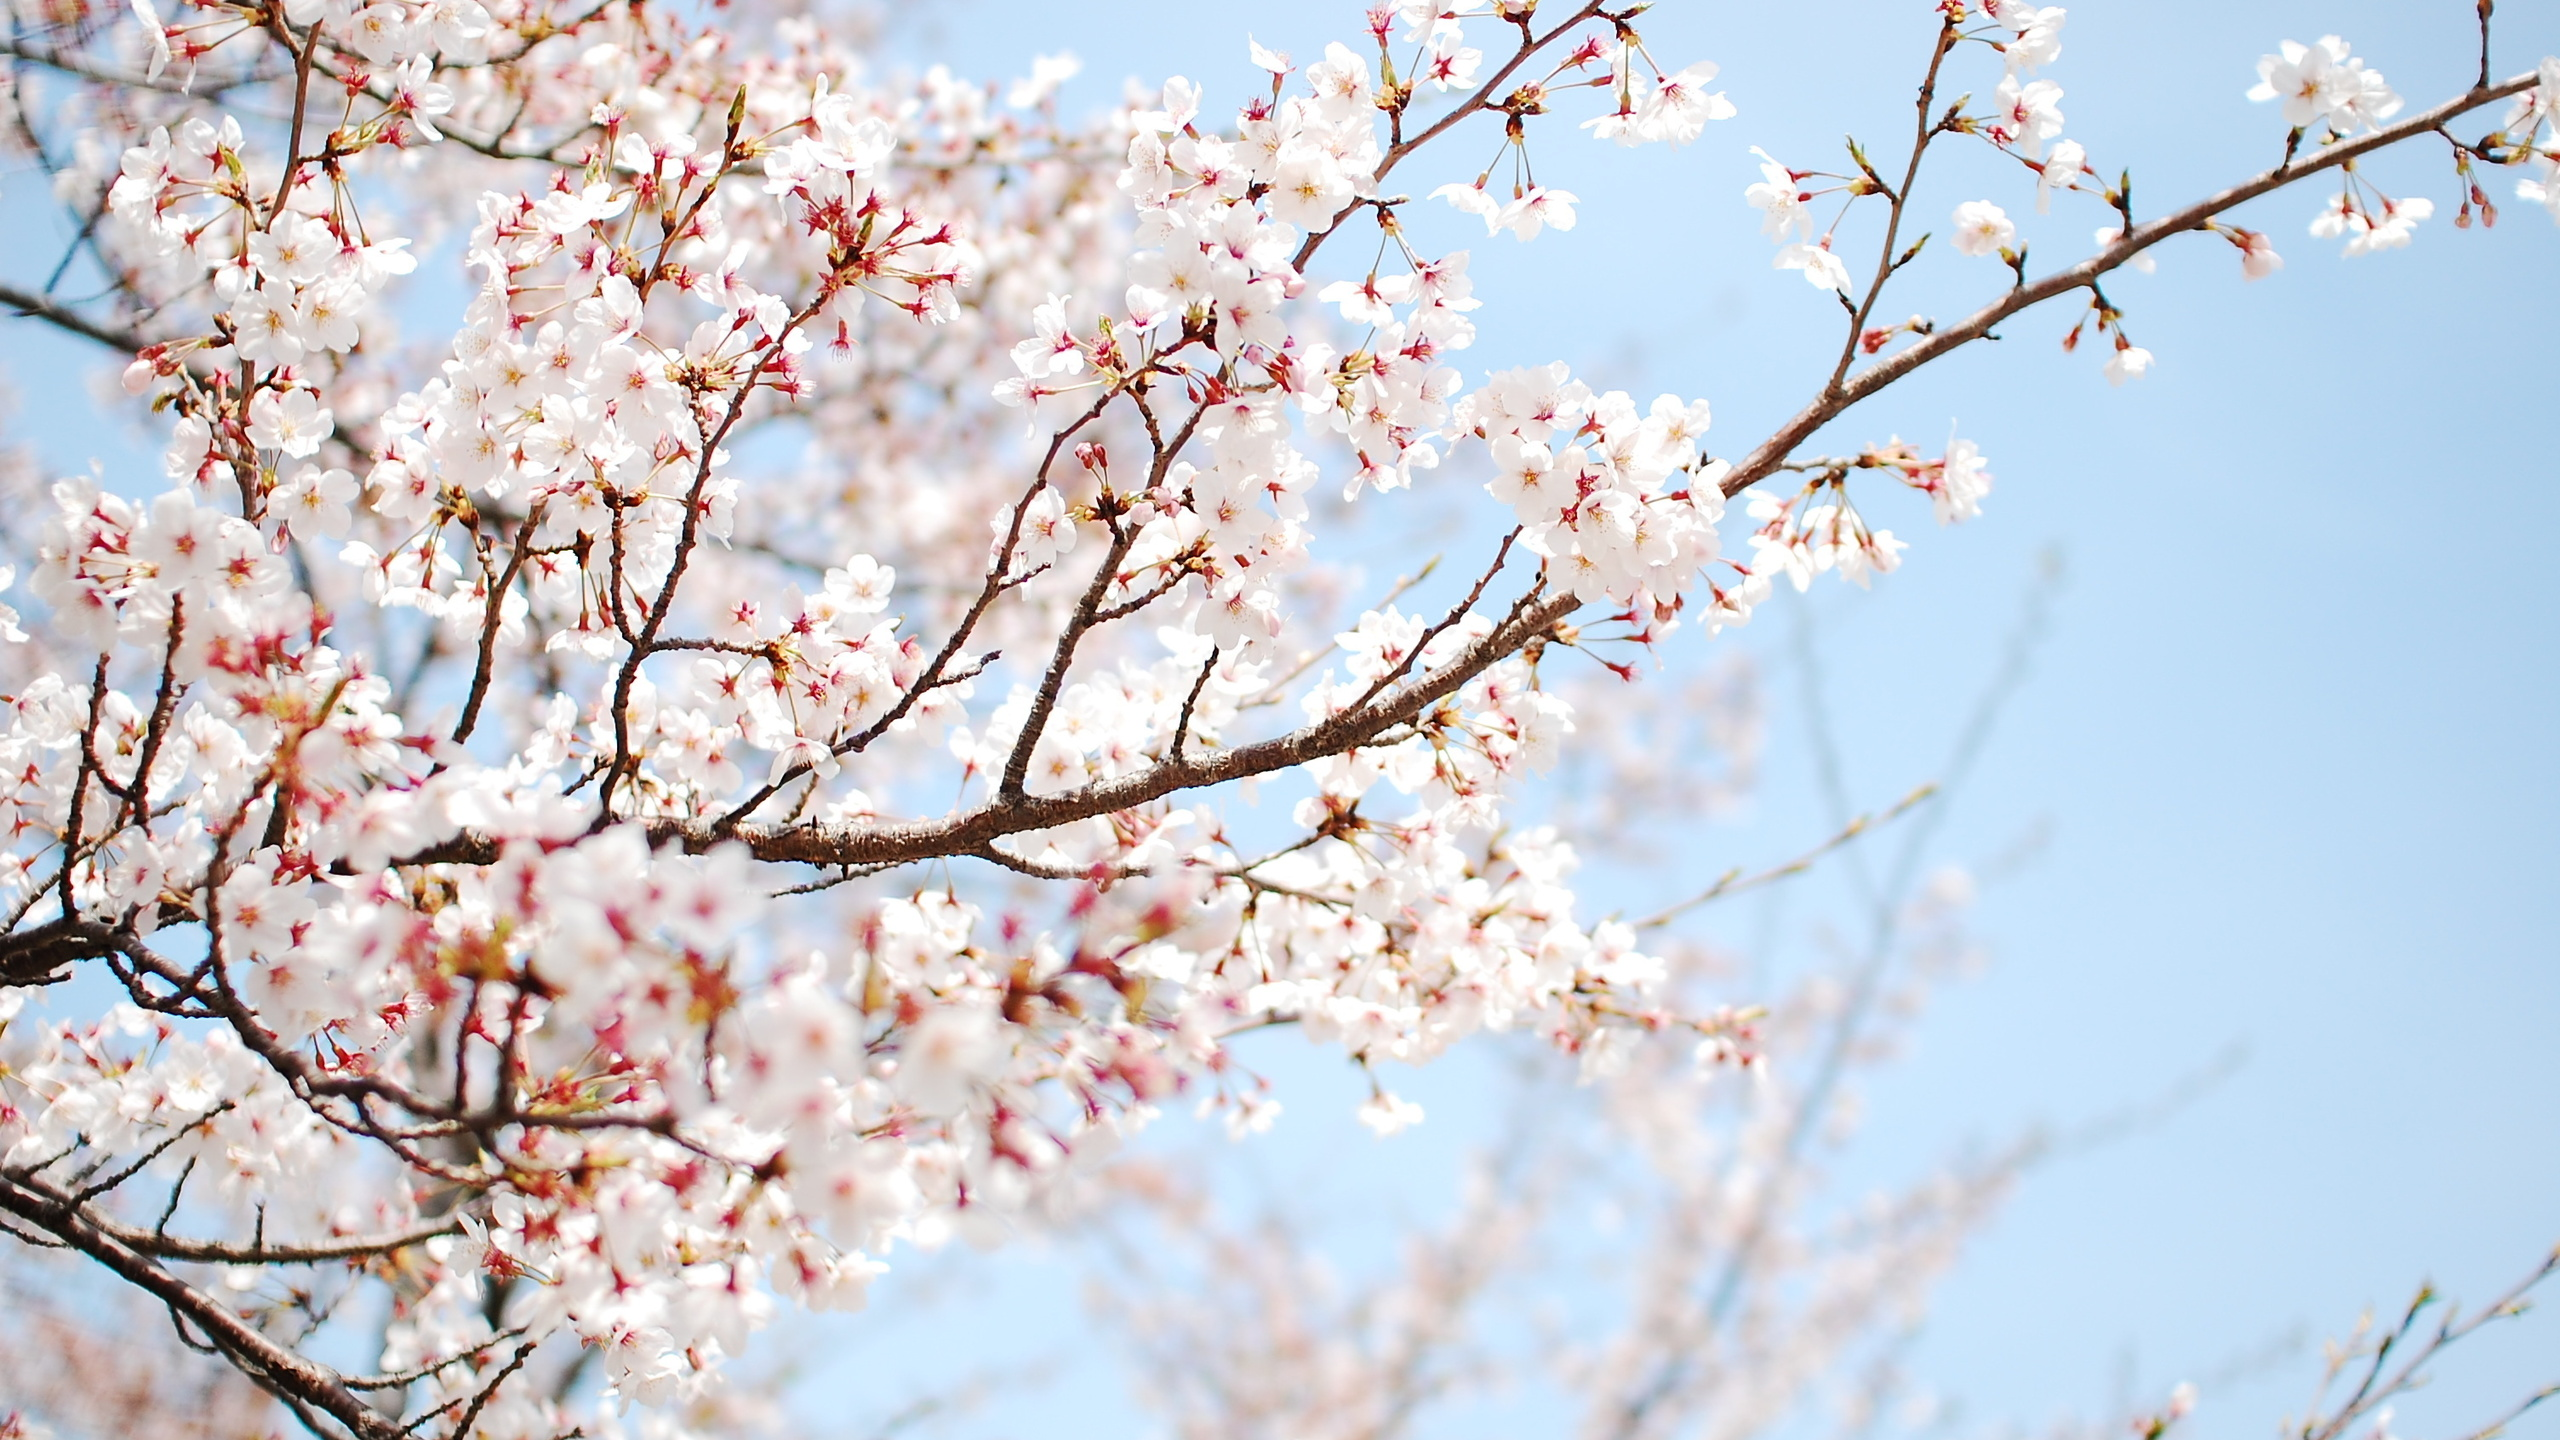 Great Wallpaper Home Screen Spring - tumblr_static_4pxr0wfy4h44c8c4cww4k00kg  Graphic_682472.jpg